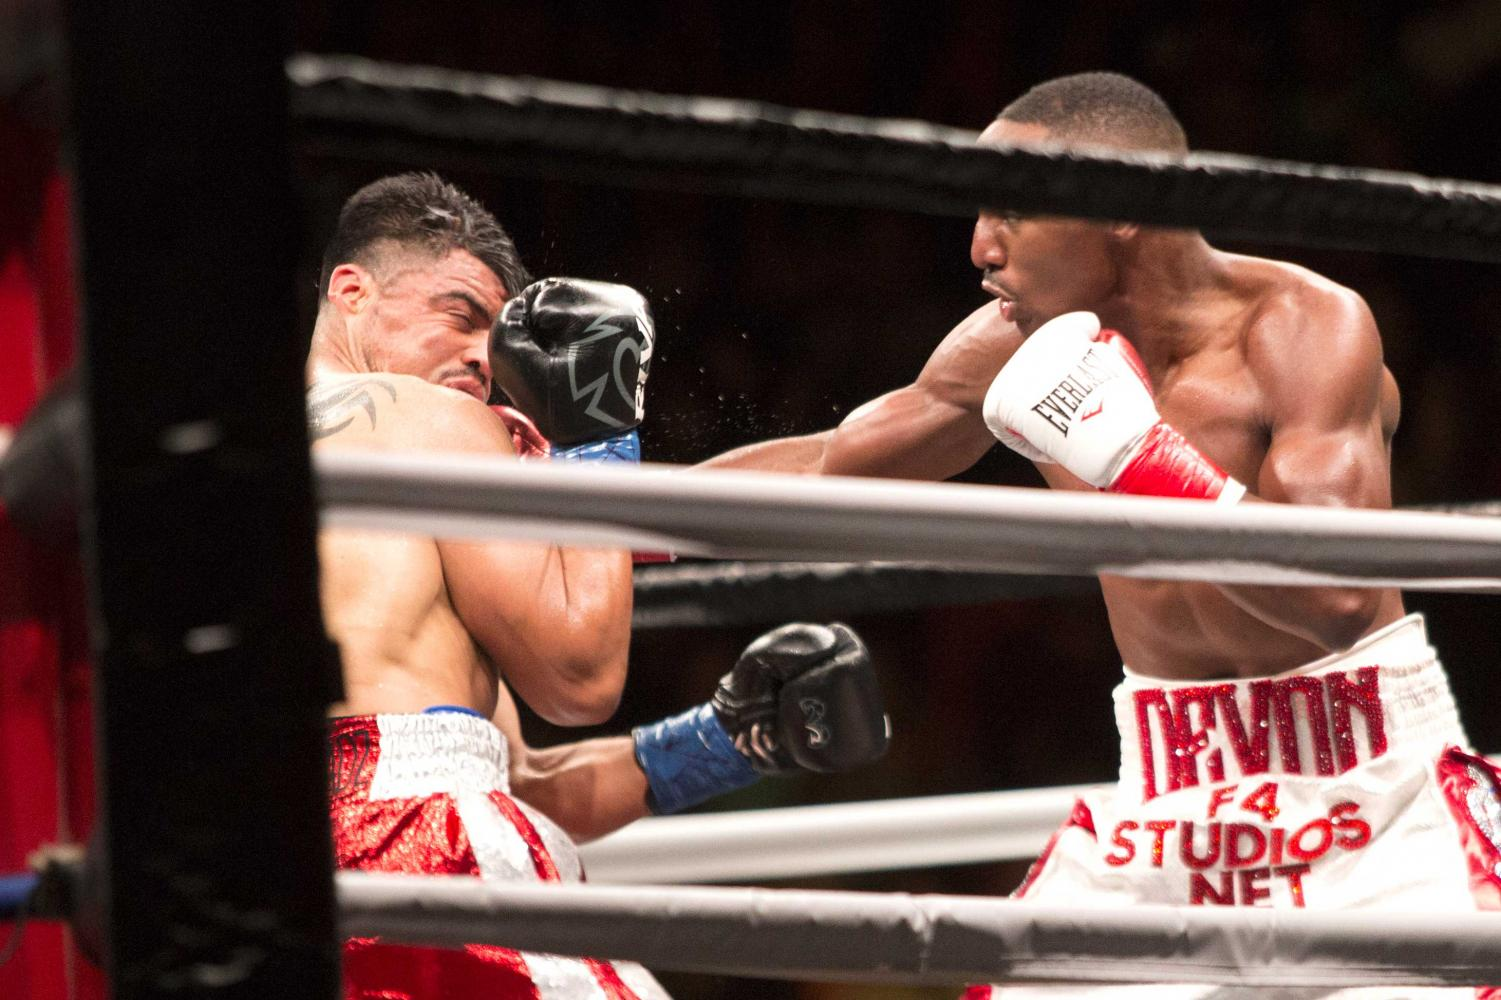 Victor+Ortiz+and+Devon+Alexander+ended+in+a+draw.+